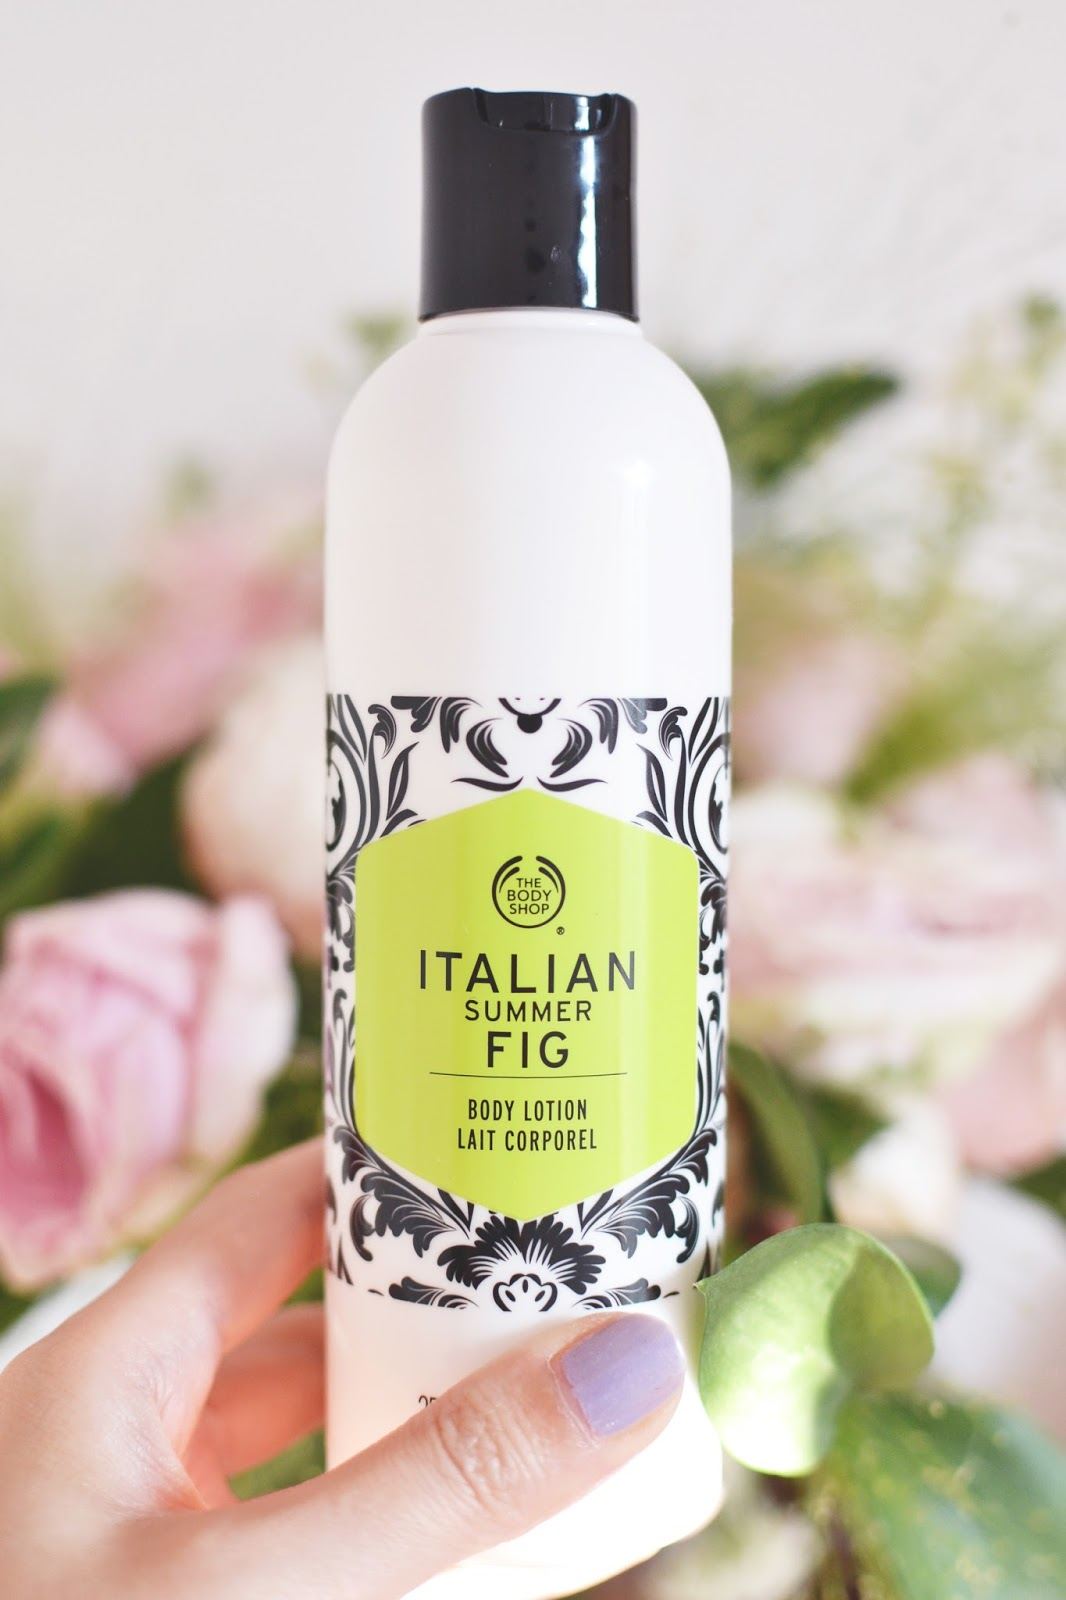 Italian Summer Fig From The Body Shop